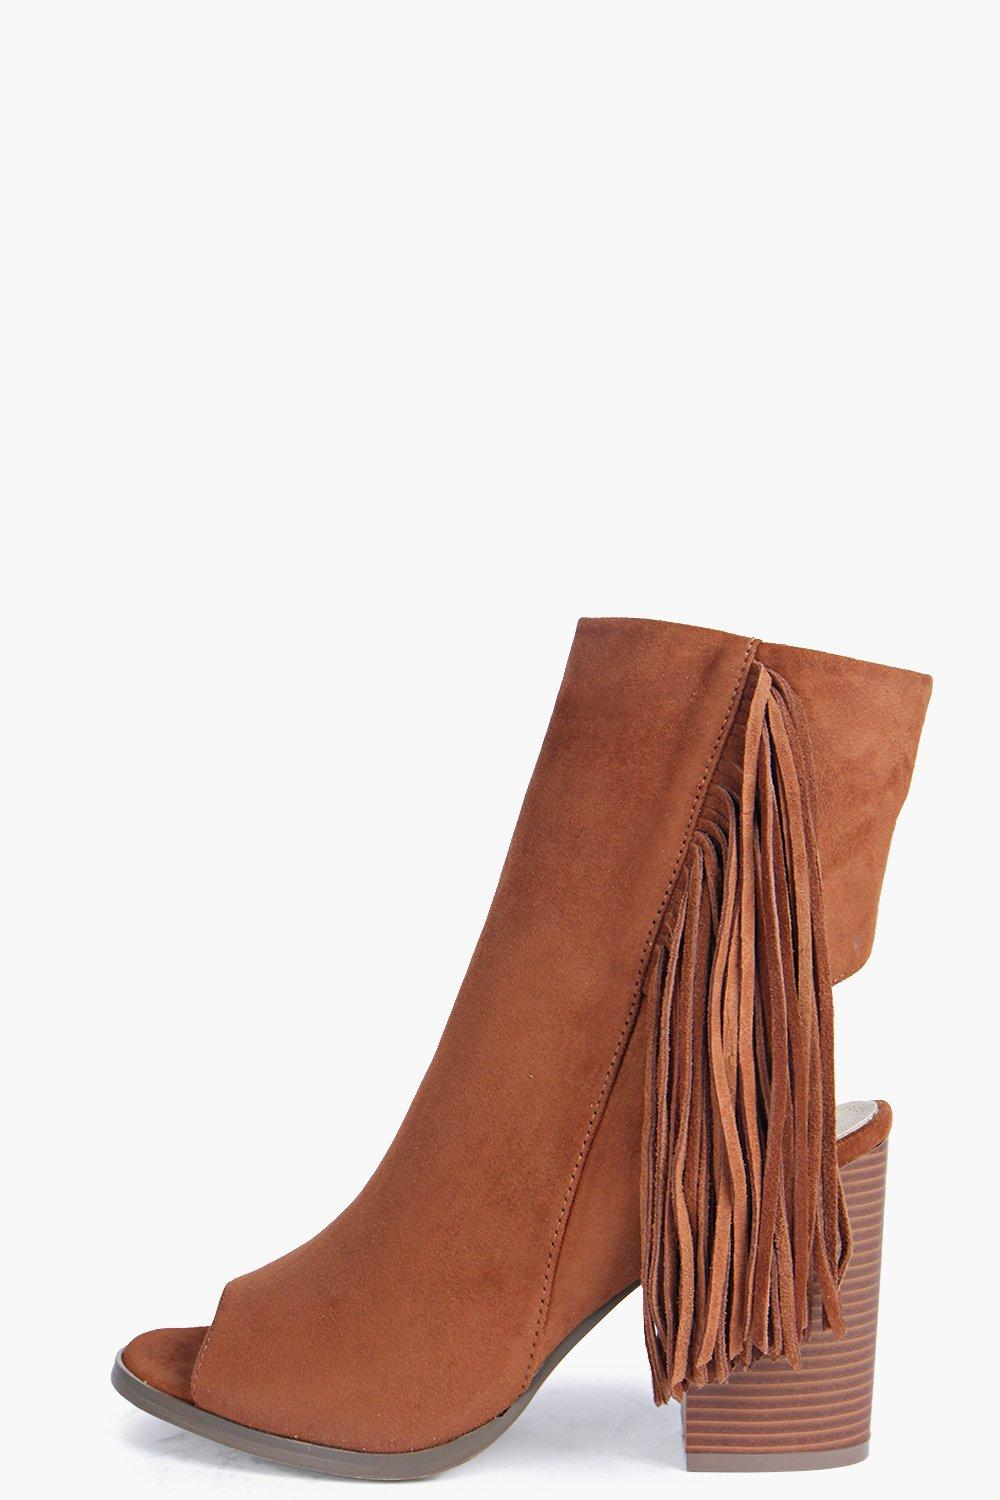 Rose Tassel Side Peeptoe Shoe Boot